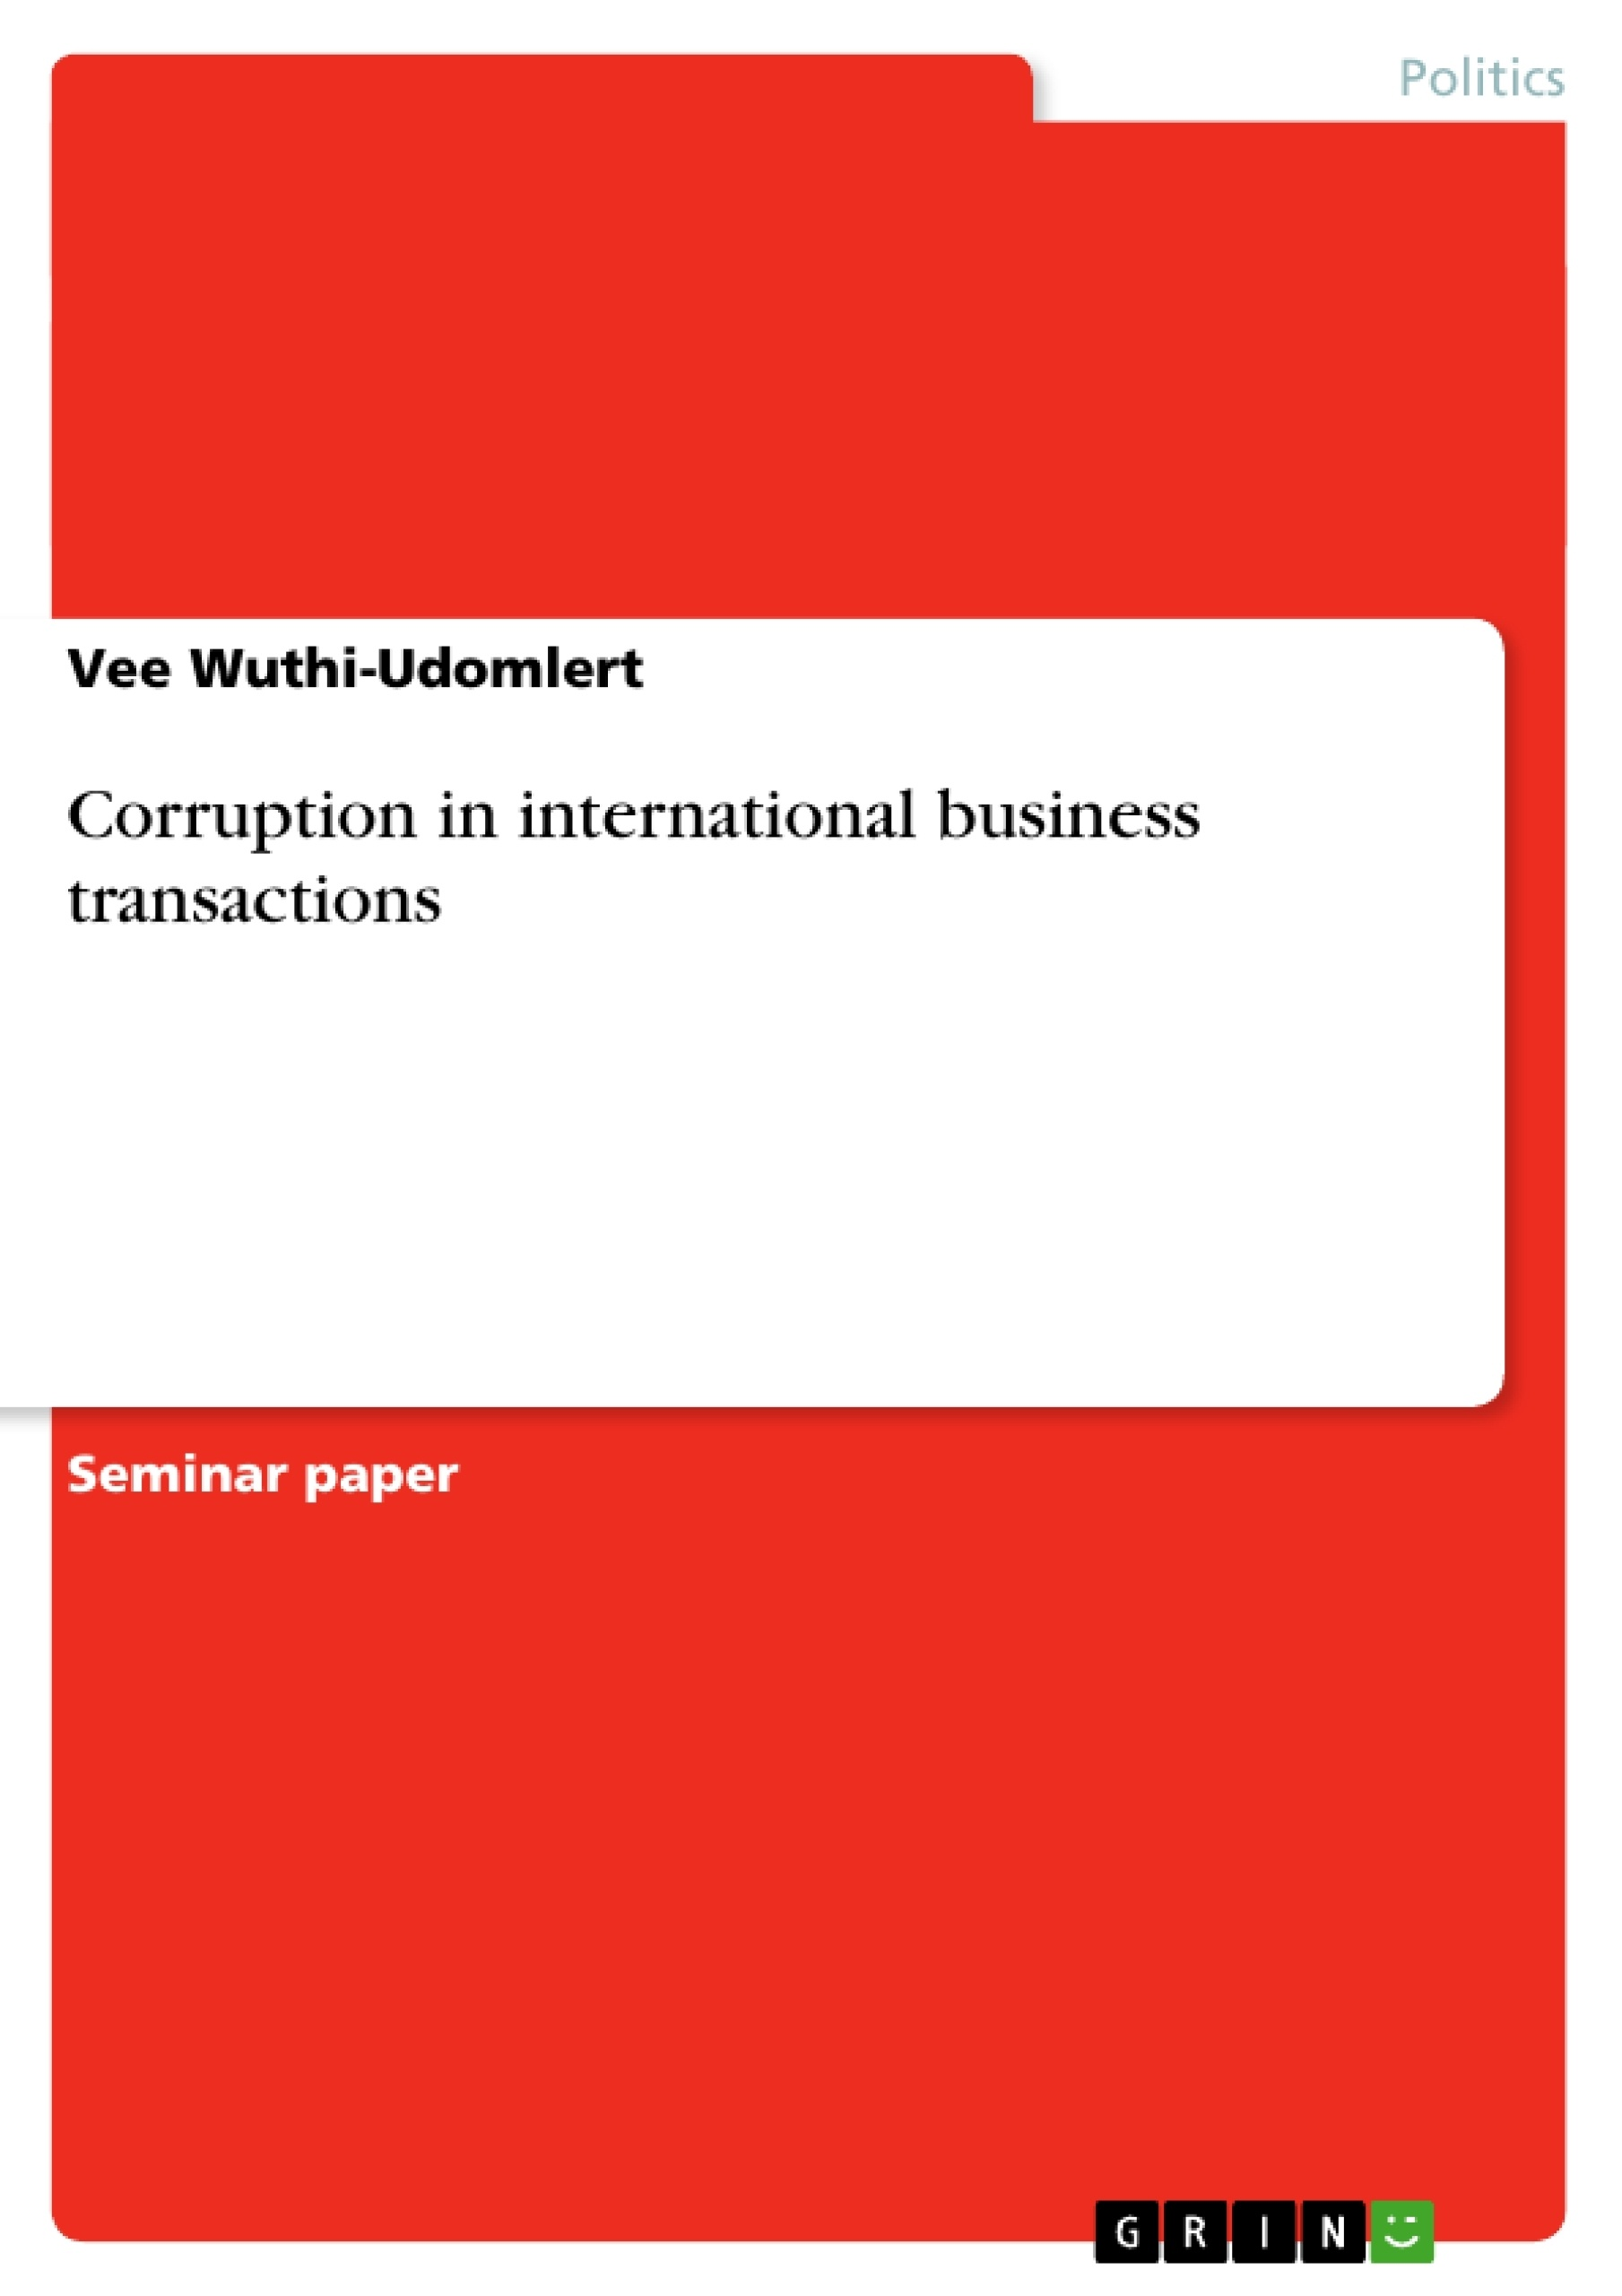 international business paper corruption in international business  corruption in international business transactions publish your upload your own papers earn money and win an